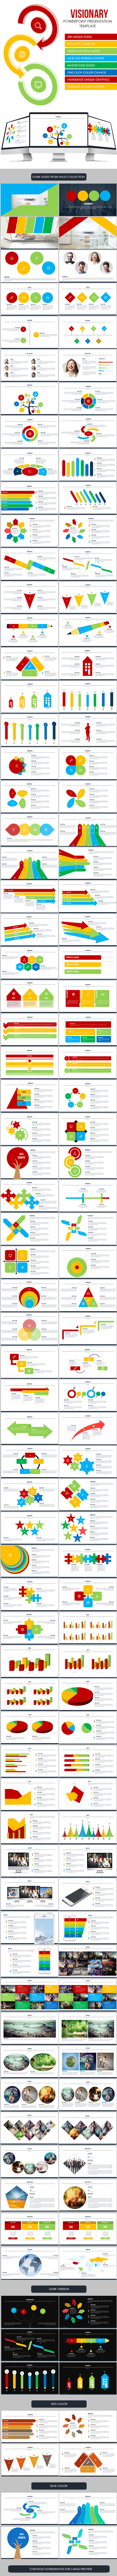 GraphicRiver Visionary Powerpoint Presentation Template 10268993